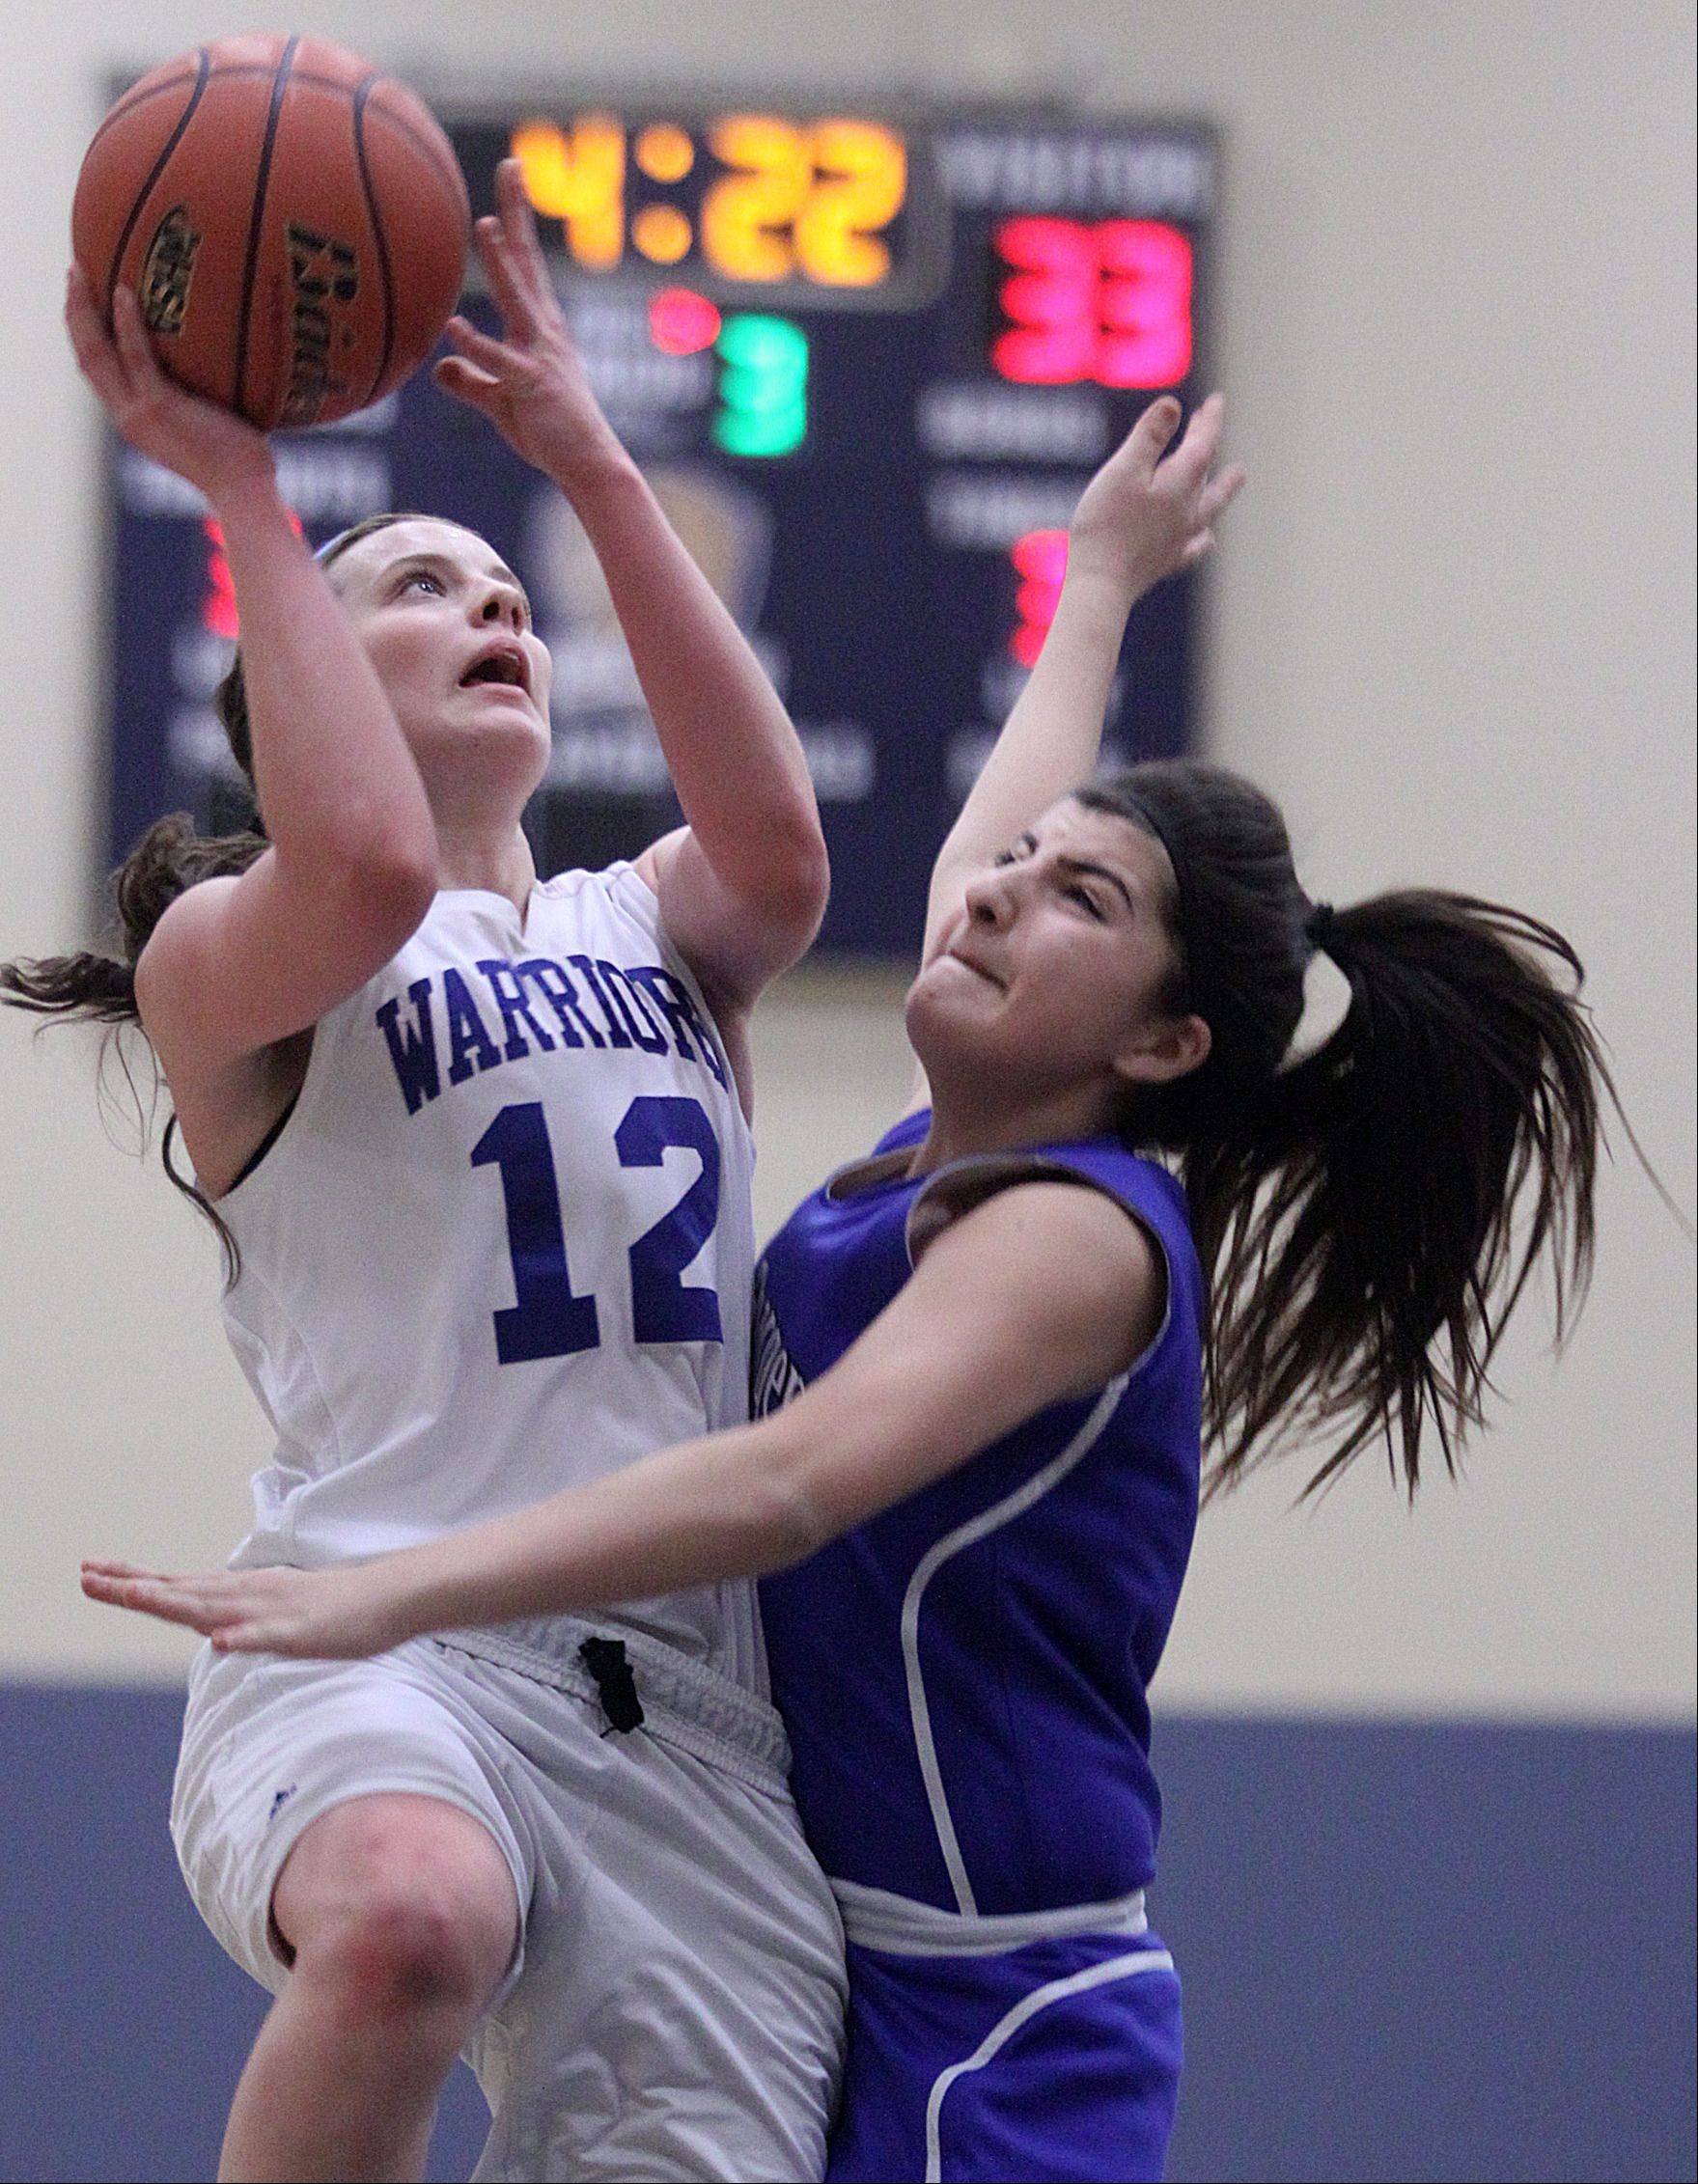 Westminster Christian's Maddie Versluys, left, takes the ball to the hoop against Christian Liberty Academy's Samantha Amedin during the Class 1A Harvest Christian regional championship game Friday night.